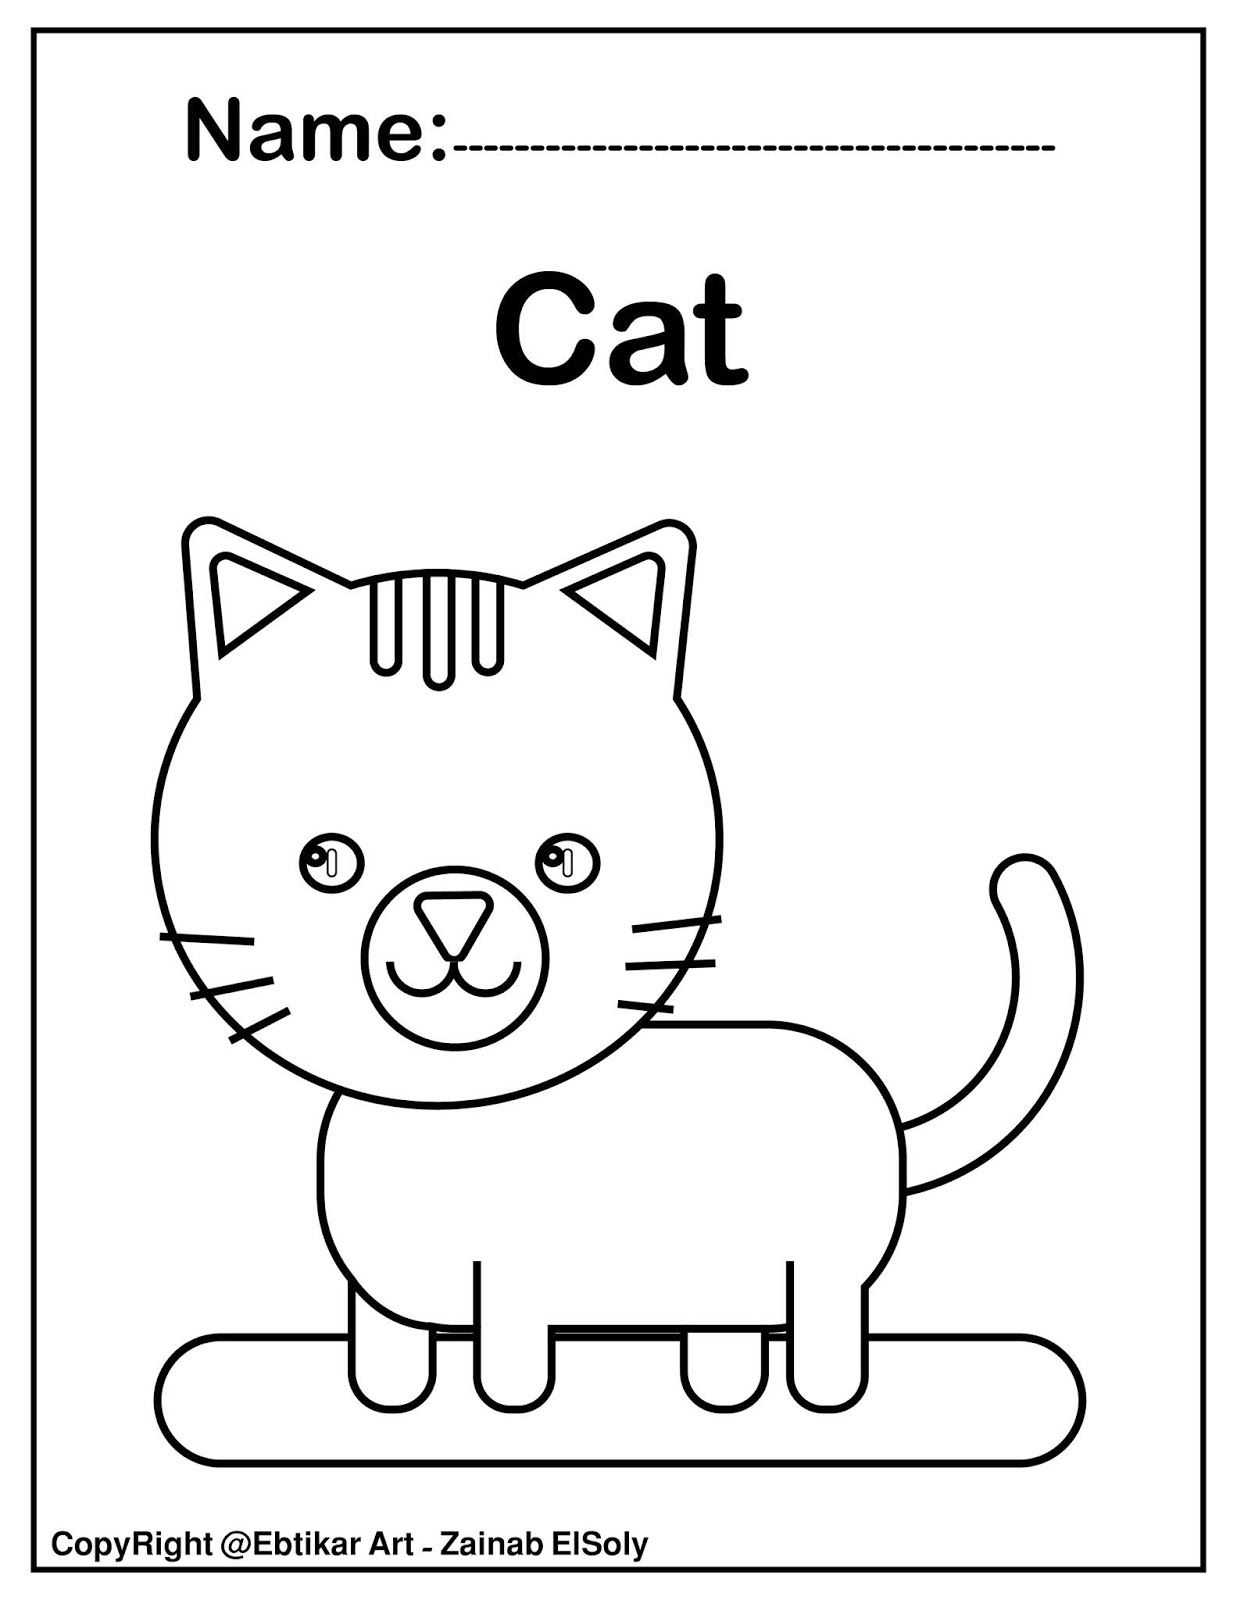 Set Of Cute Animals Coloring Pages Preschool Coloring Pages Cute Animal Coloring Pages Kindergarten Coloring Pages